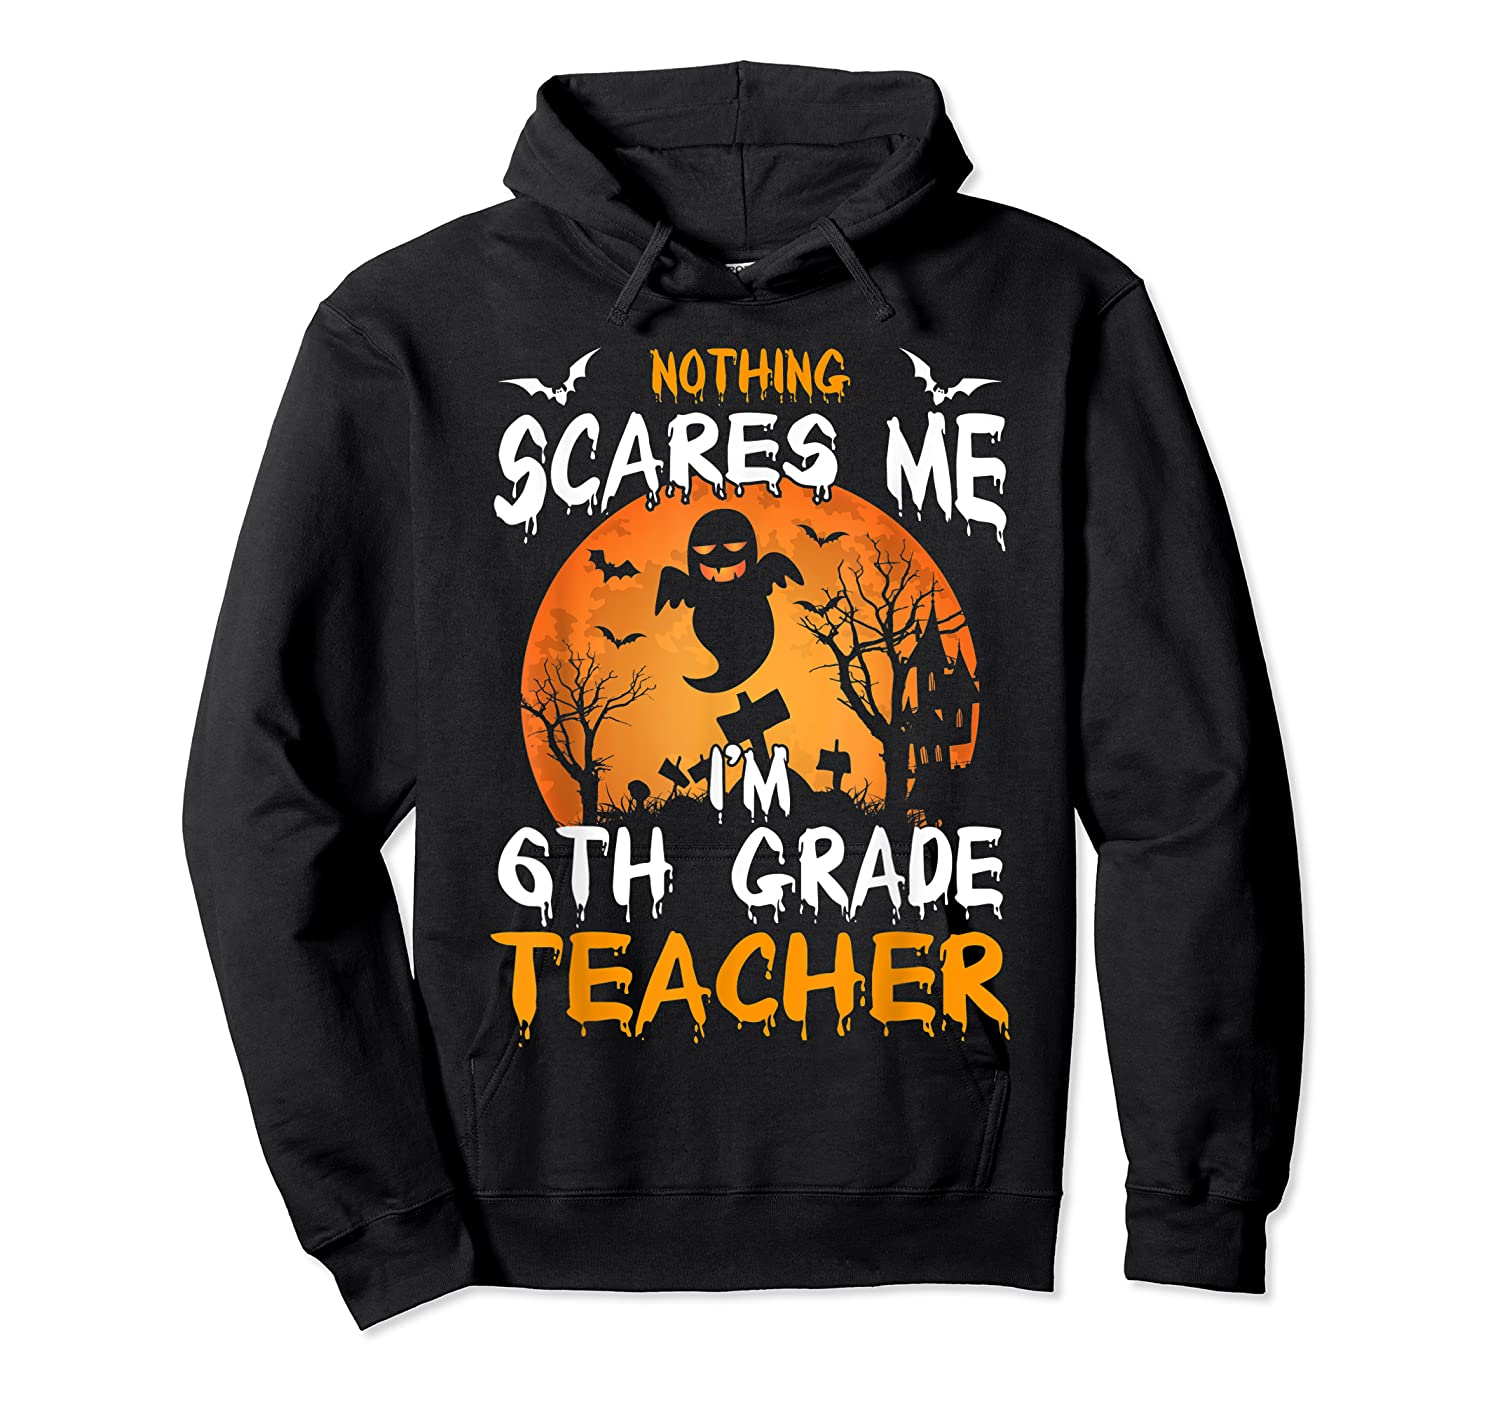 Nothing Scares Me I'm 6th Grade Tea Halloween Gift Shirts Unisex Pullover Hoodie